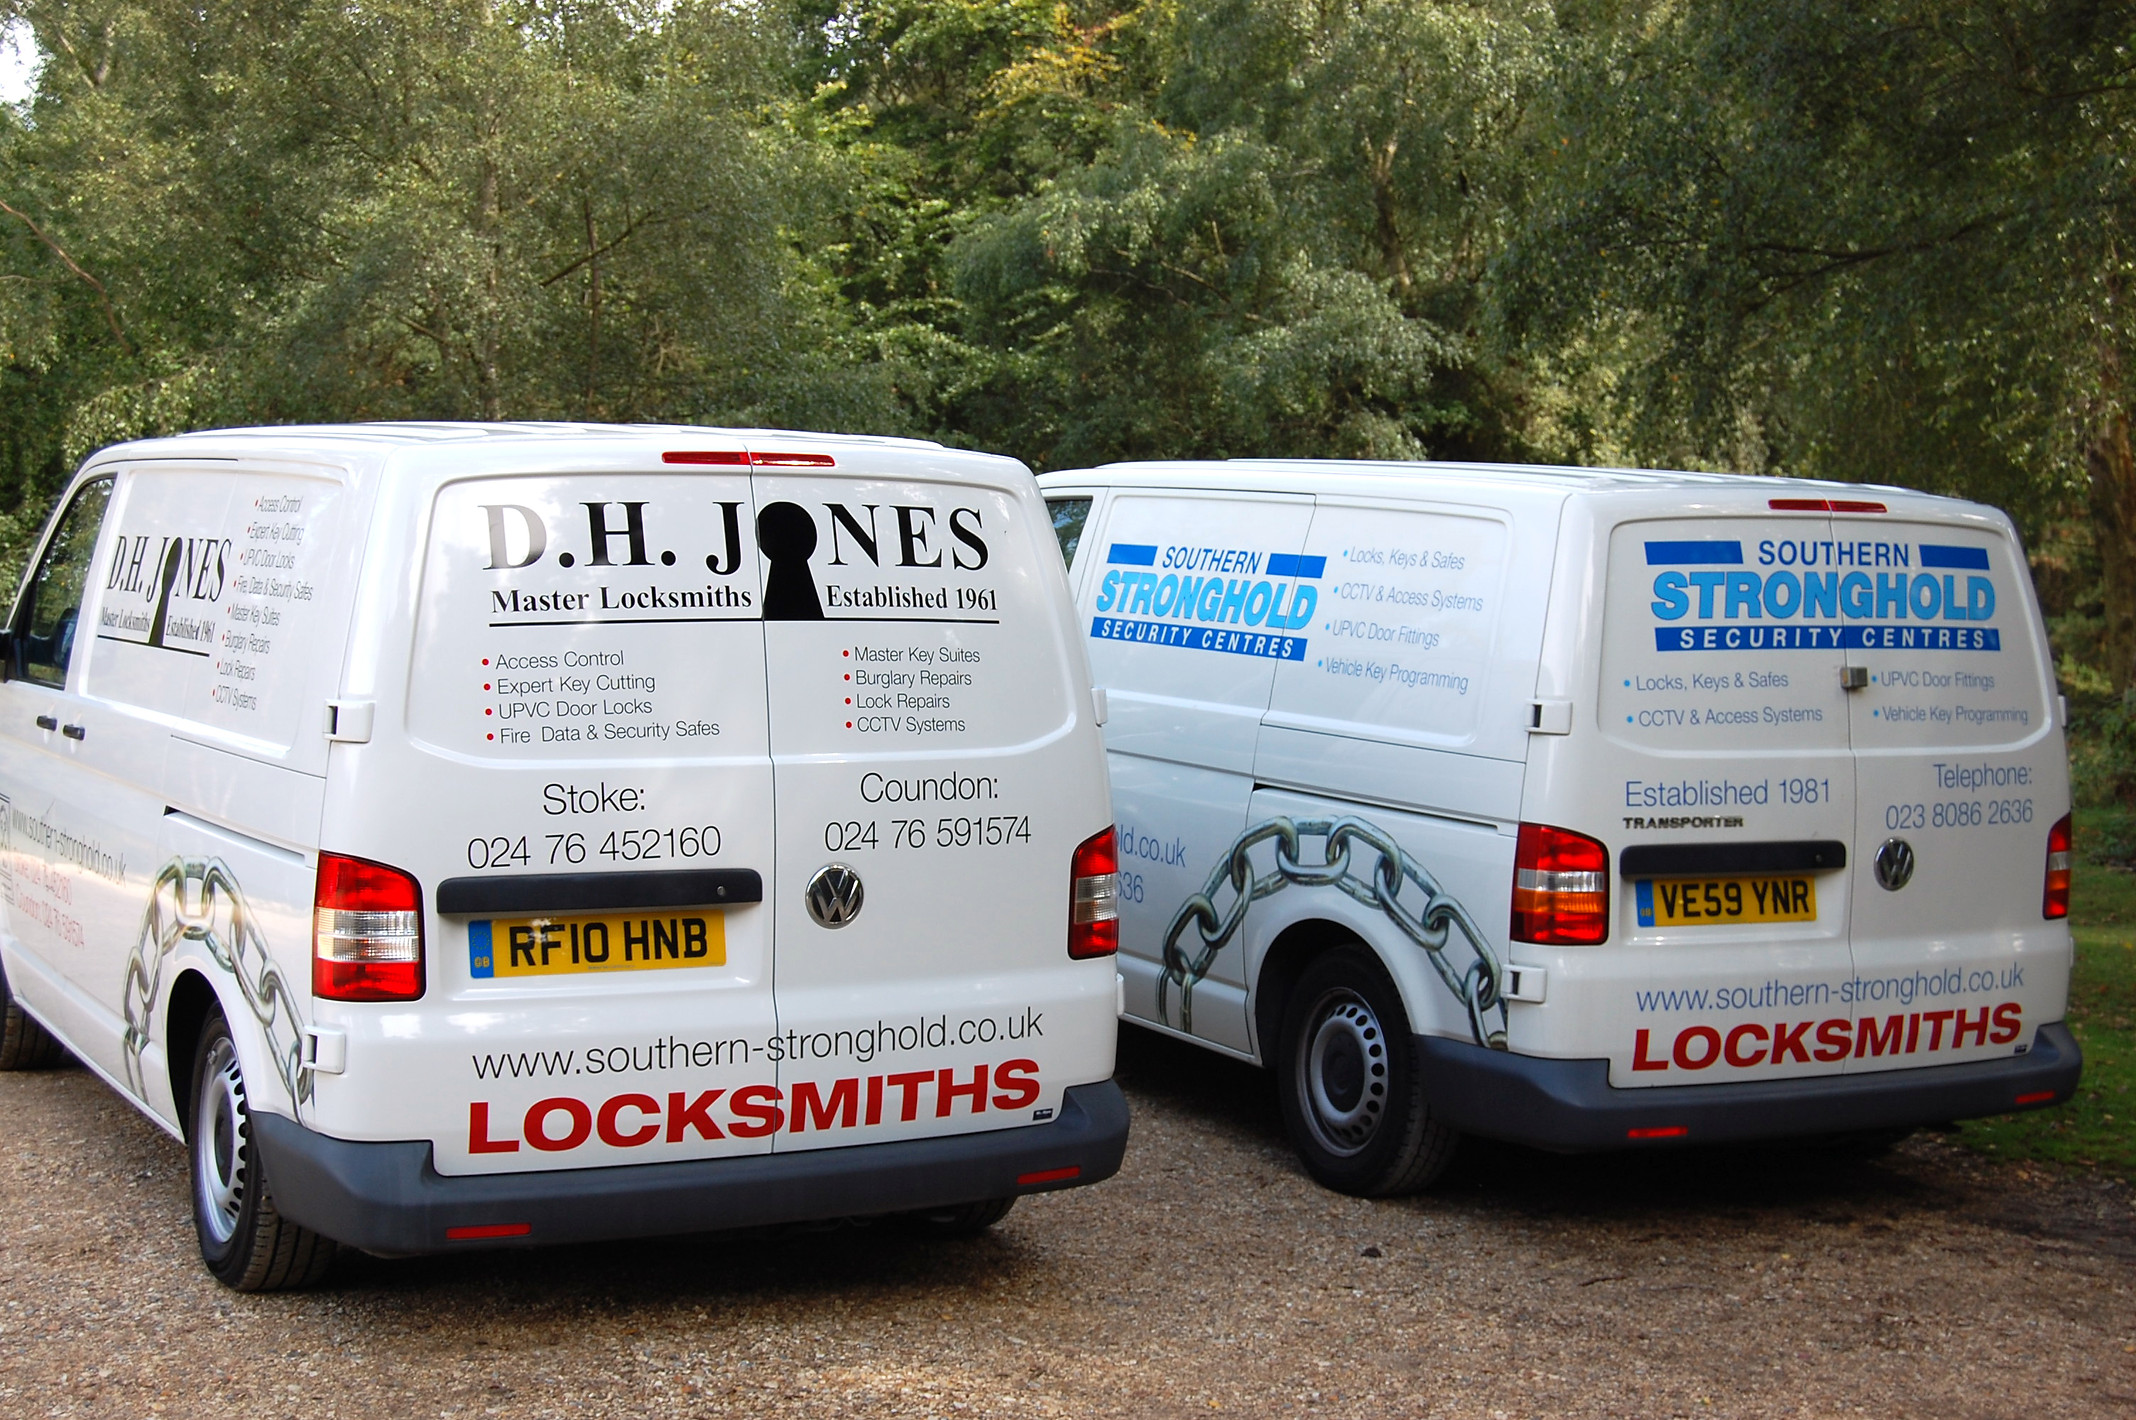 Southern Stronghold Ltd - Locksmiths, Security Centres and Key Cutting